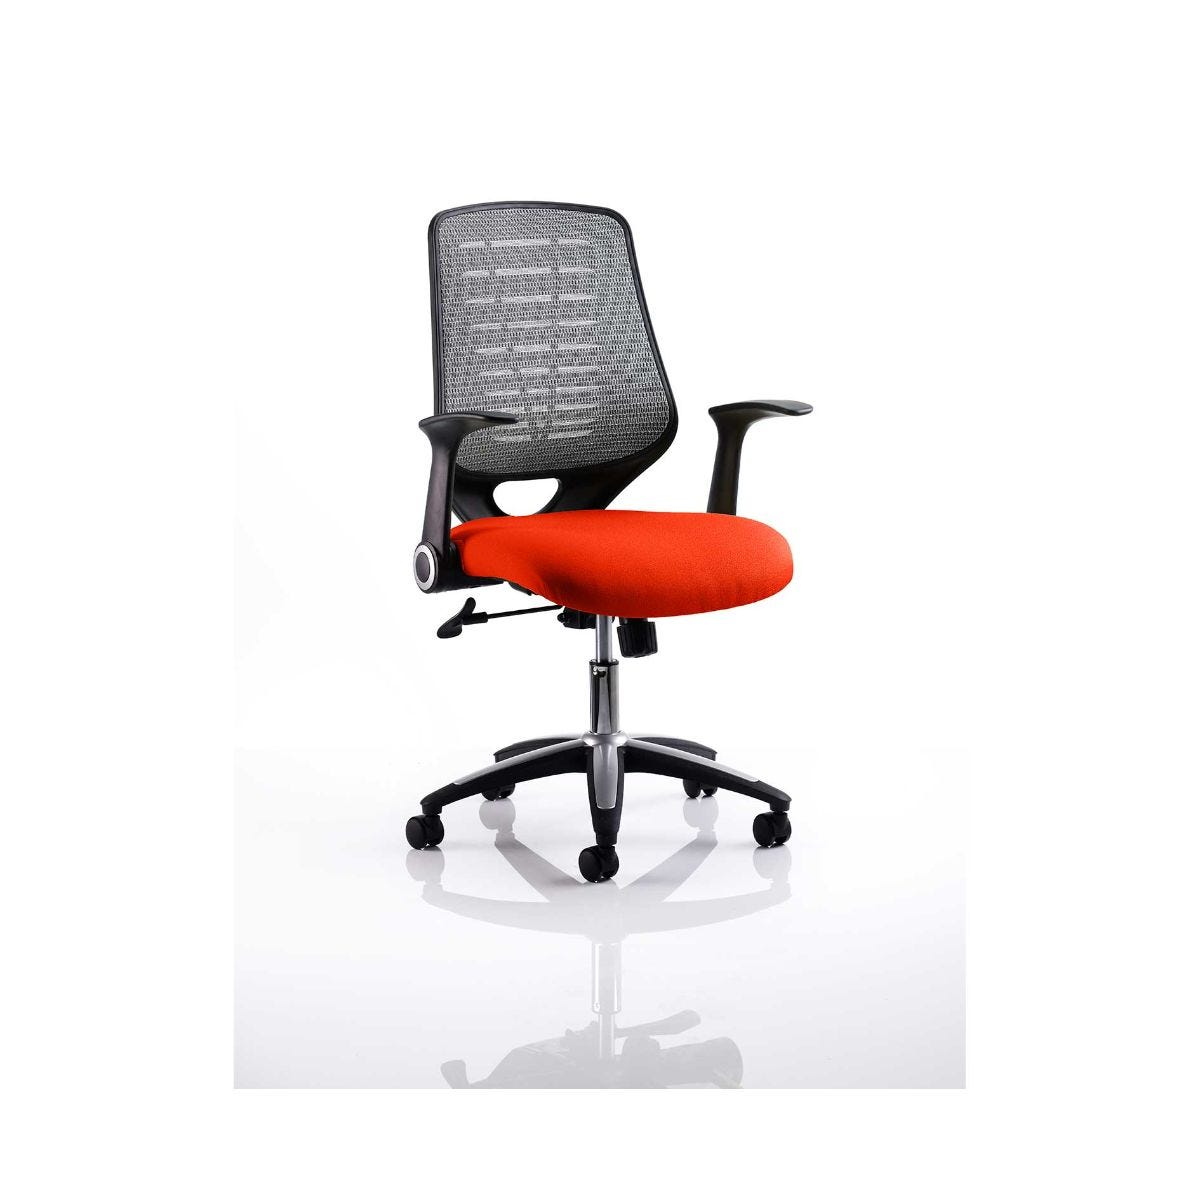 Relay Mesh Back Office Chair Silver, Pimento